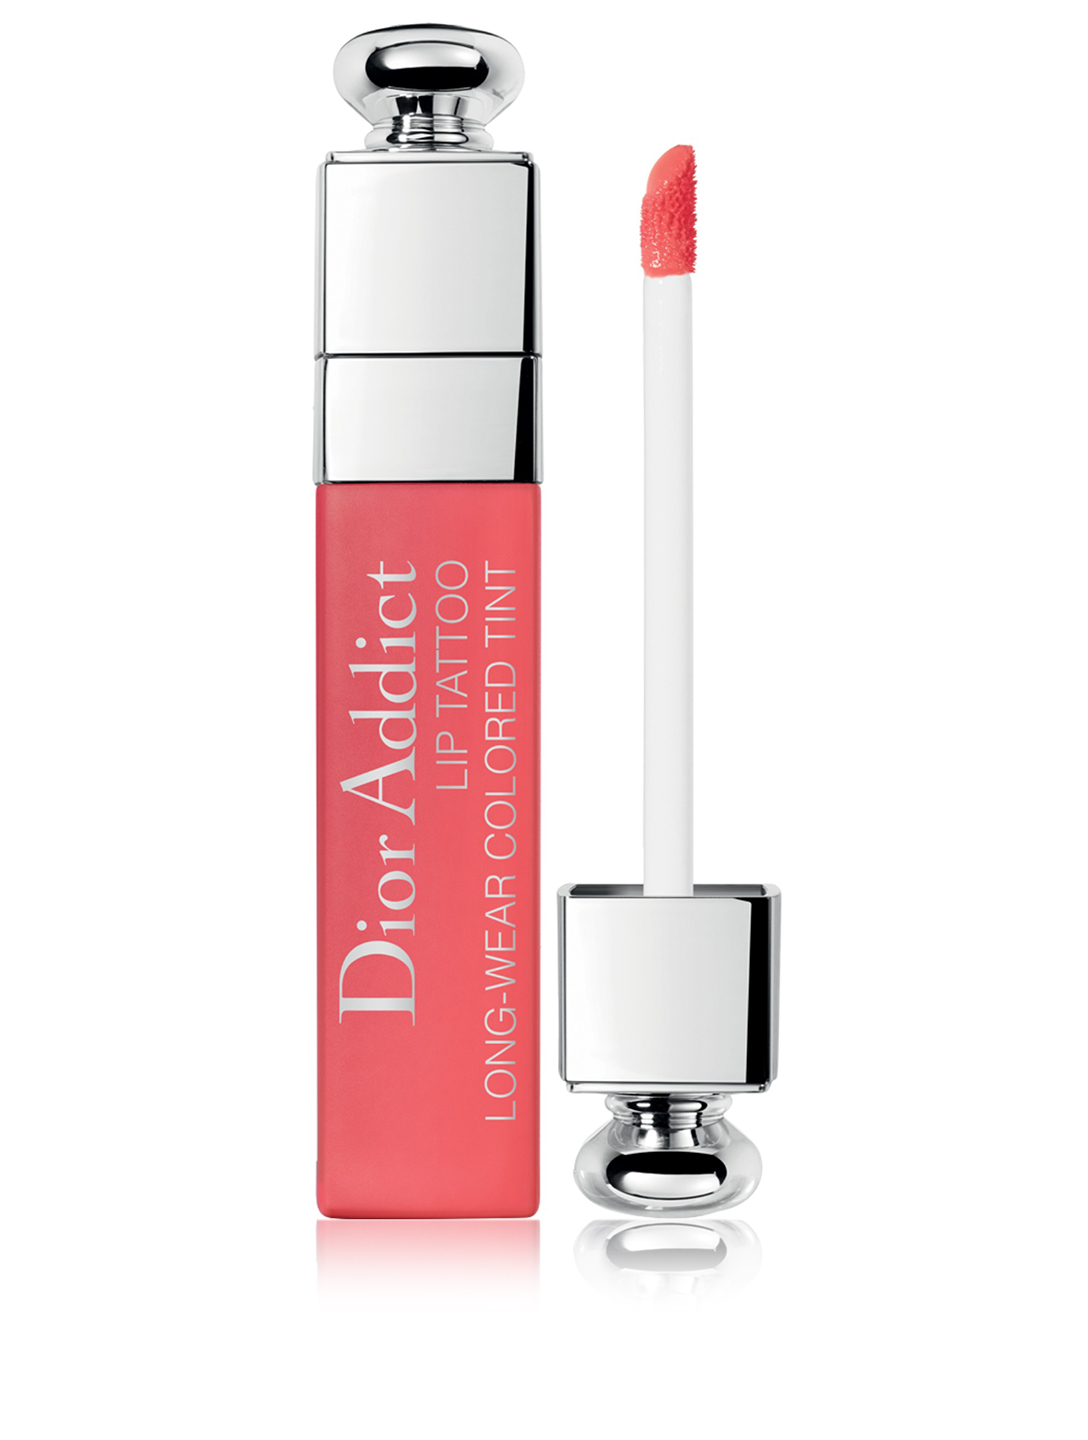 DIOR Dior Addict Lip Tattoo Long-Wear Coloured Tint Beauty Pink